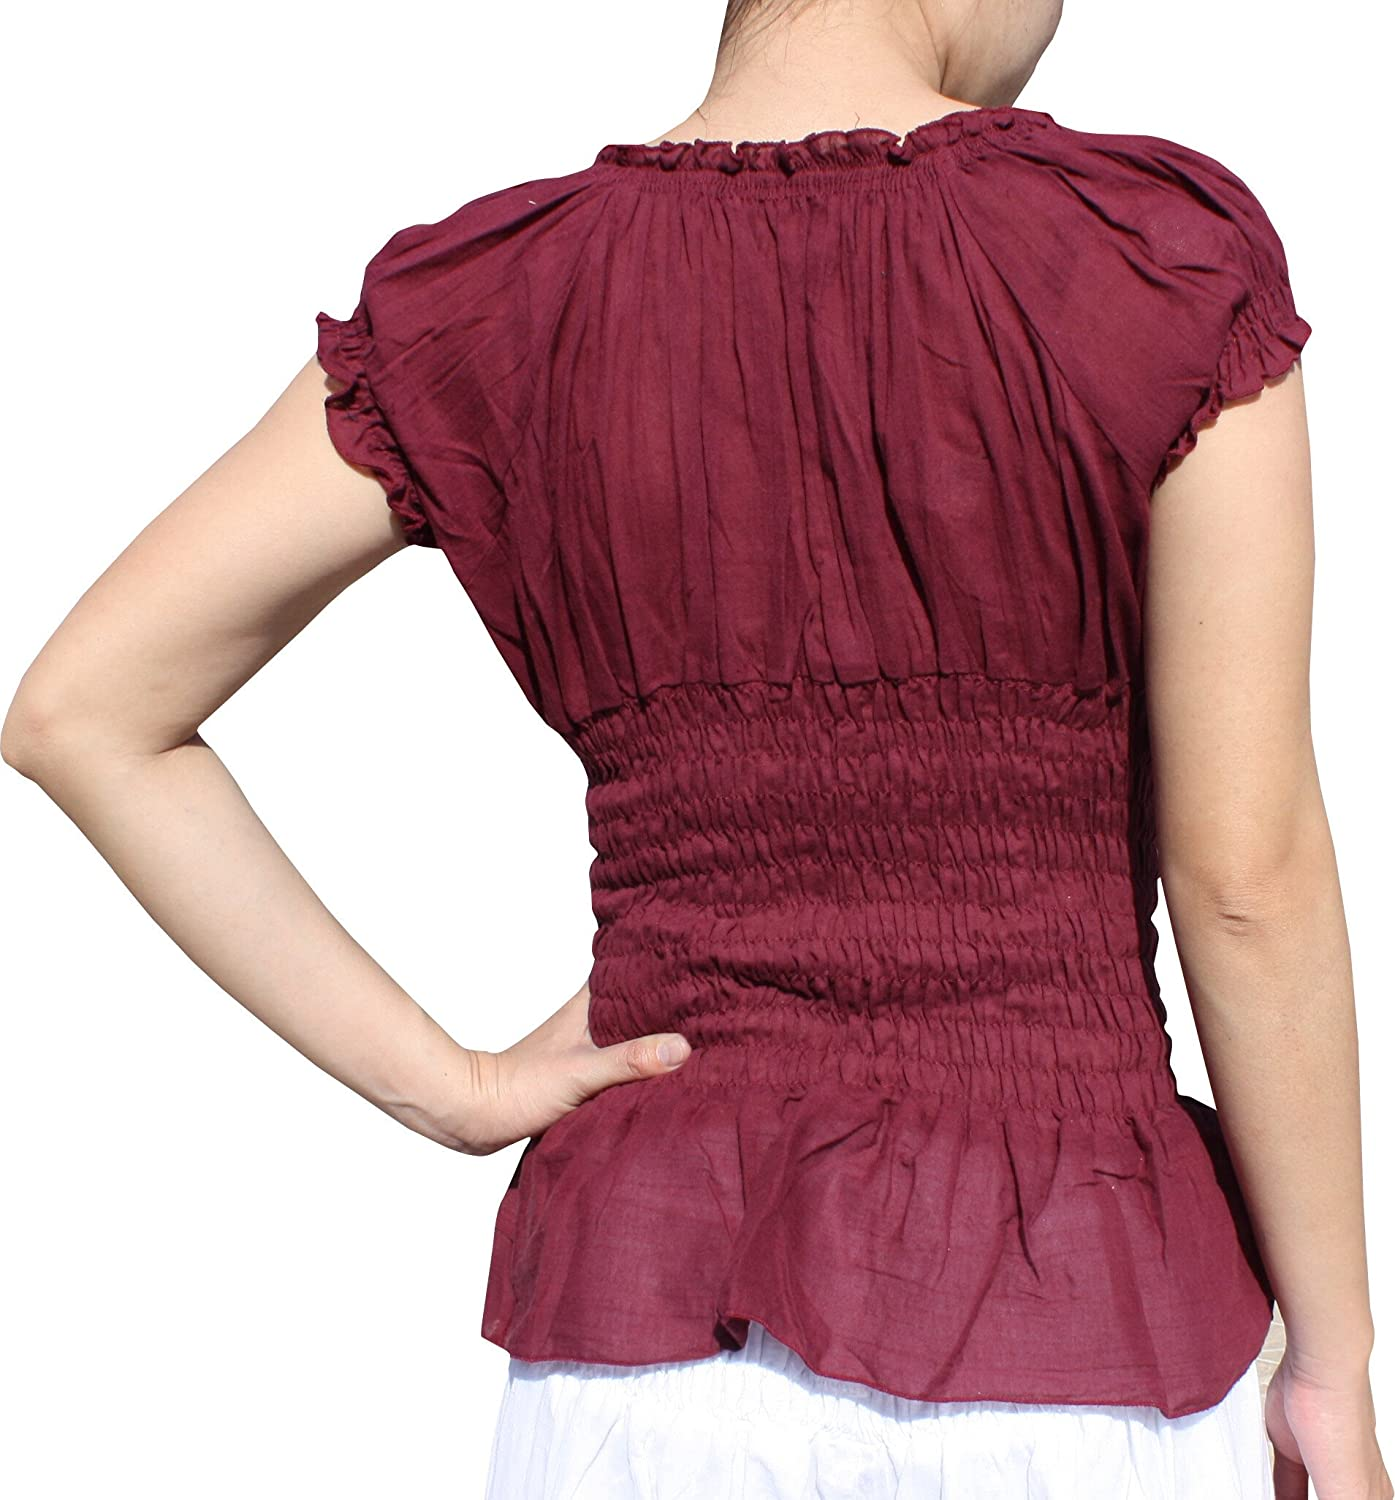 RaanPahMuang Ladies Baby Doll Serving Shirt with Smock Waist and Laced Collar Burgundy Red X-Large